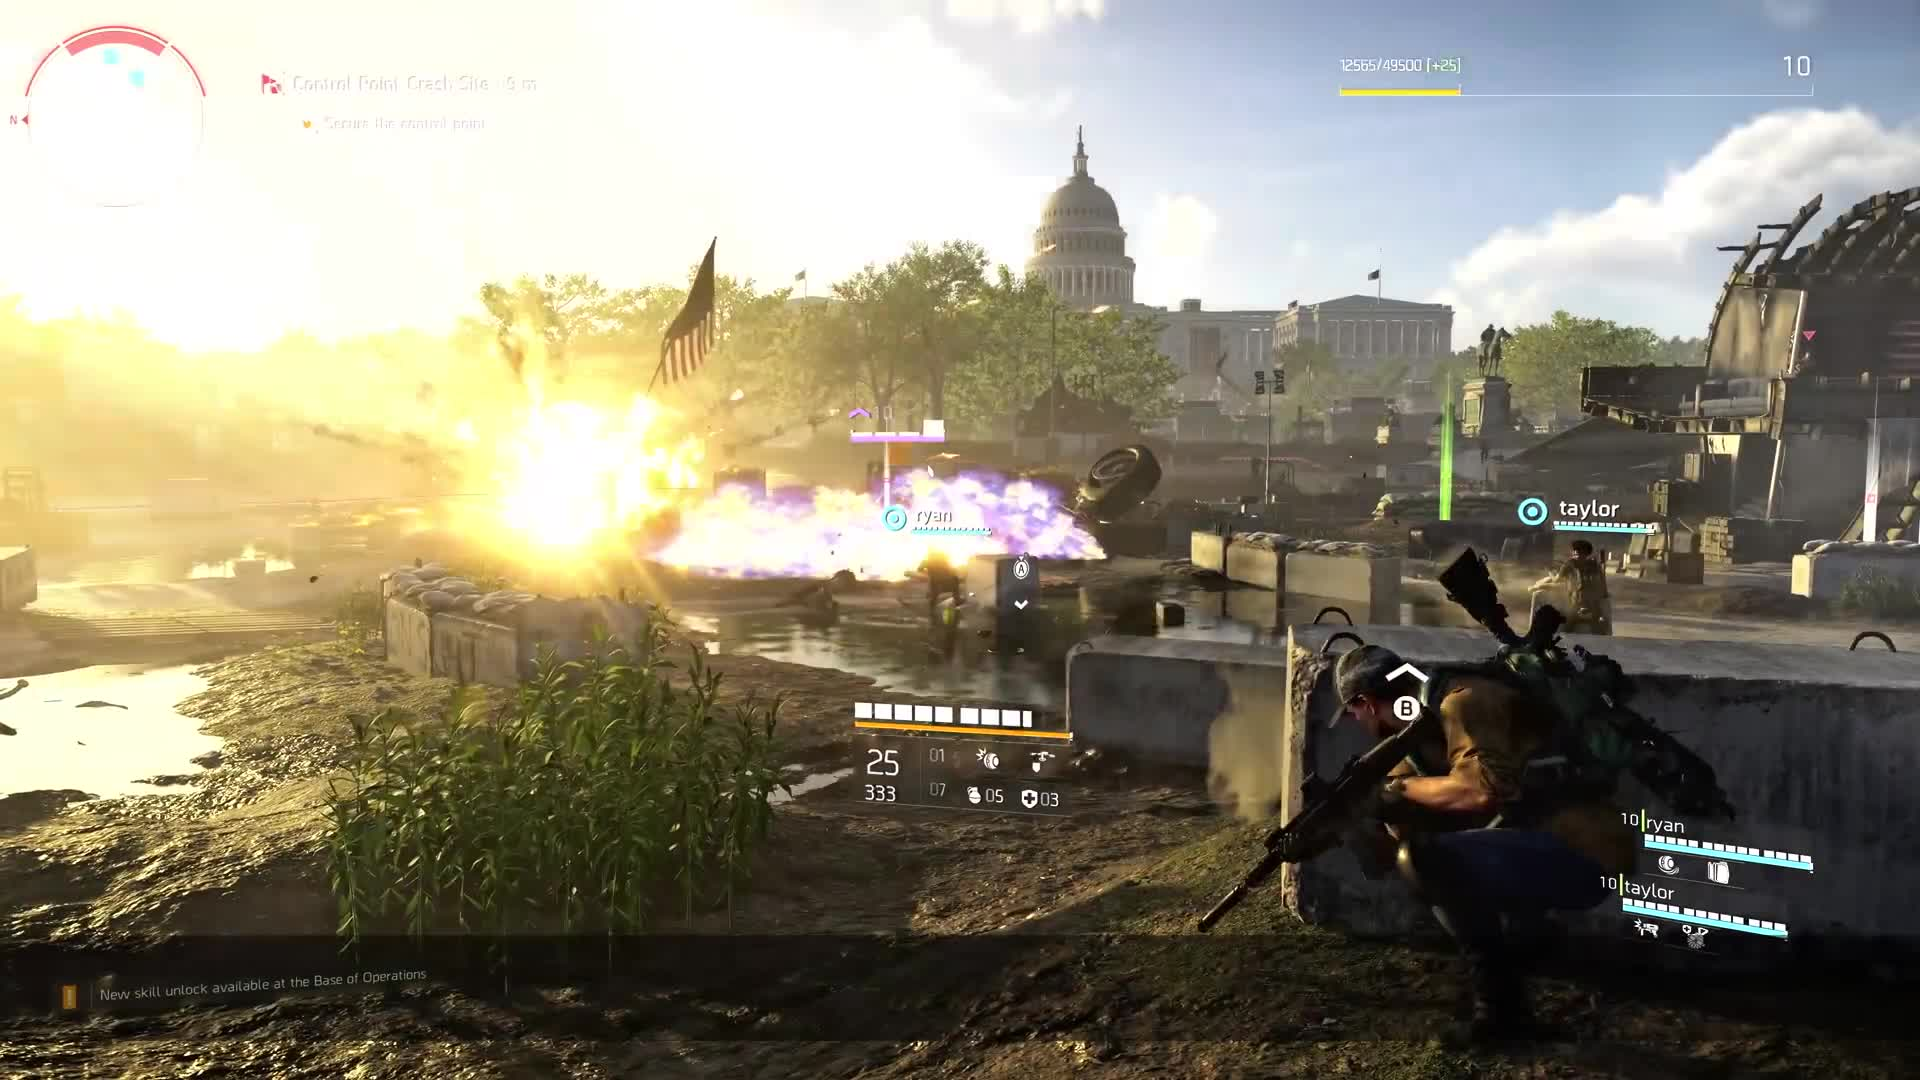 Trailer, Ubisoft, actionspiel, Amd, HDR, The Division, Freesync, The Division 2, Eyefinity